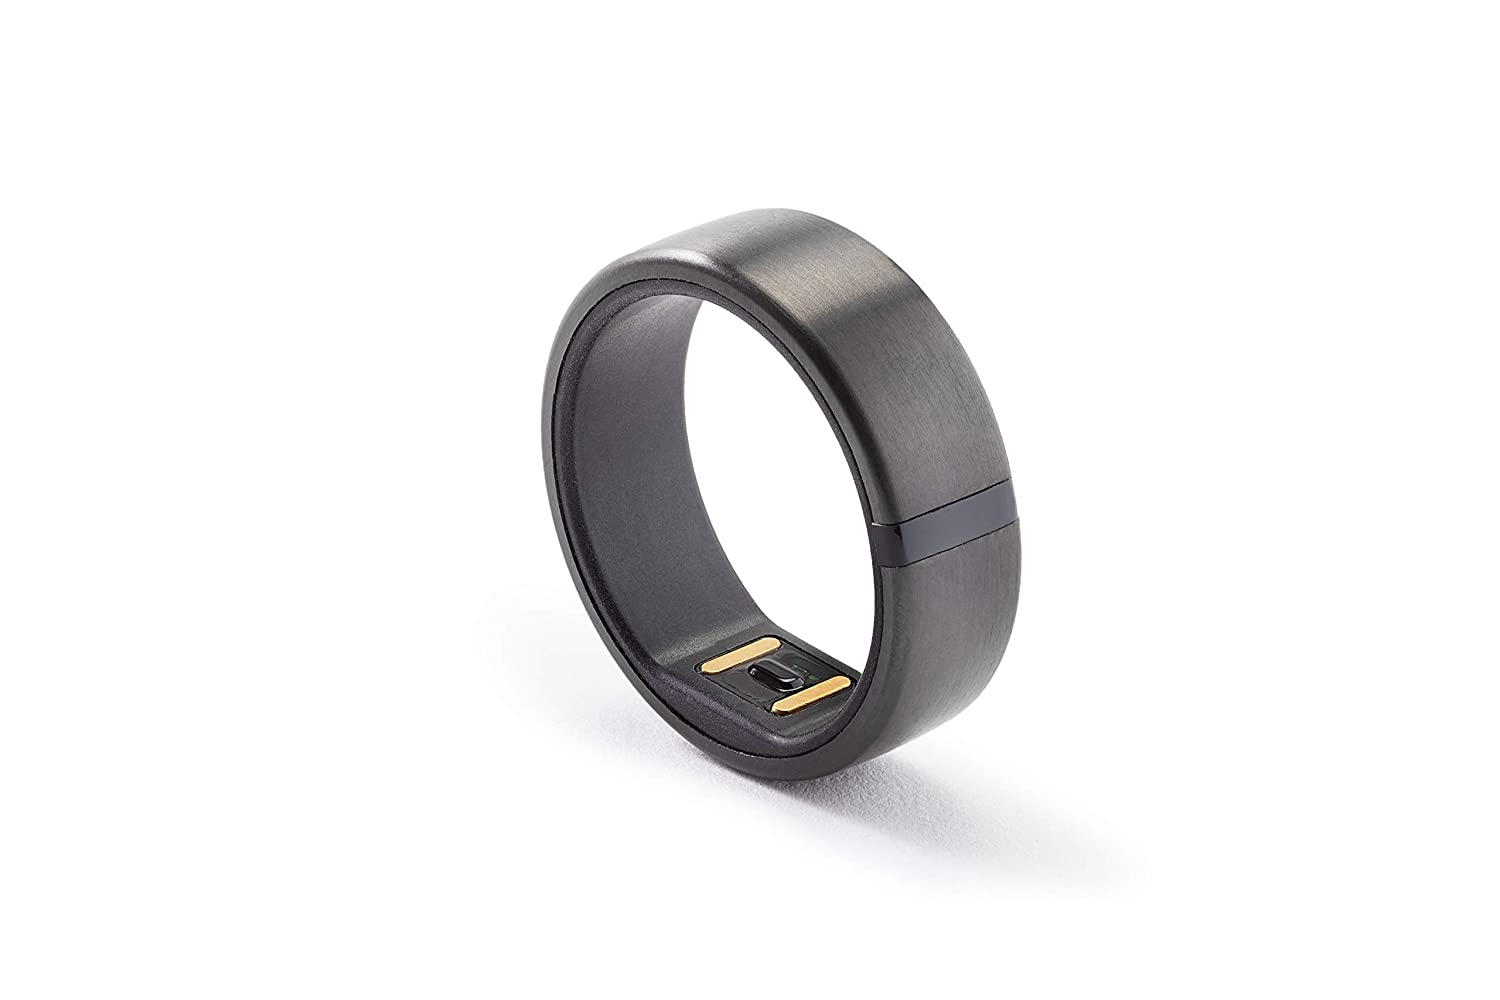 Motiv Ring Fitness, Sleep and Heart Rate Tracker